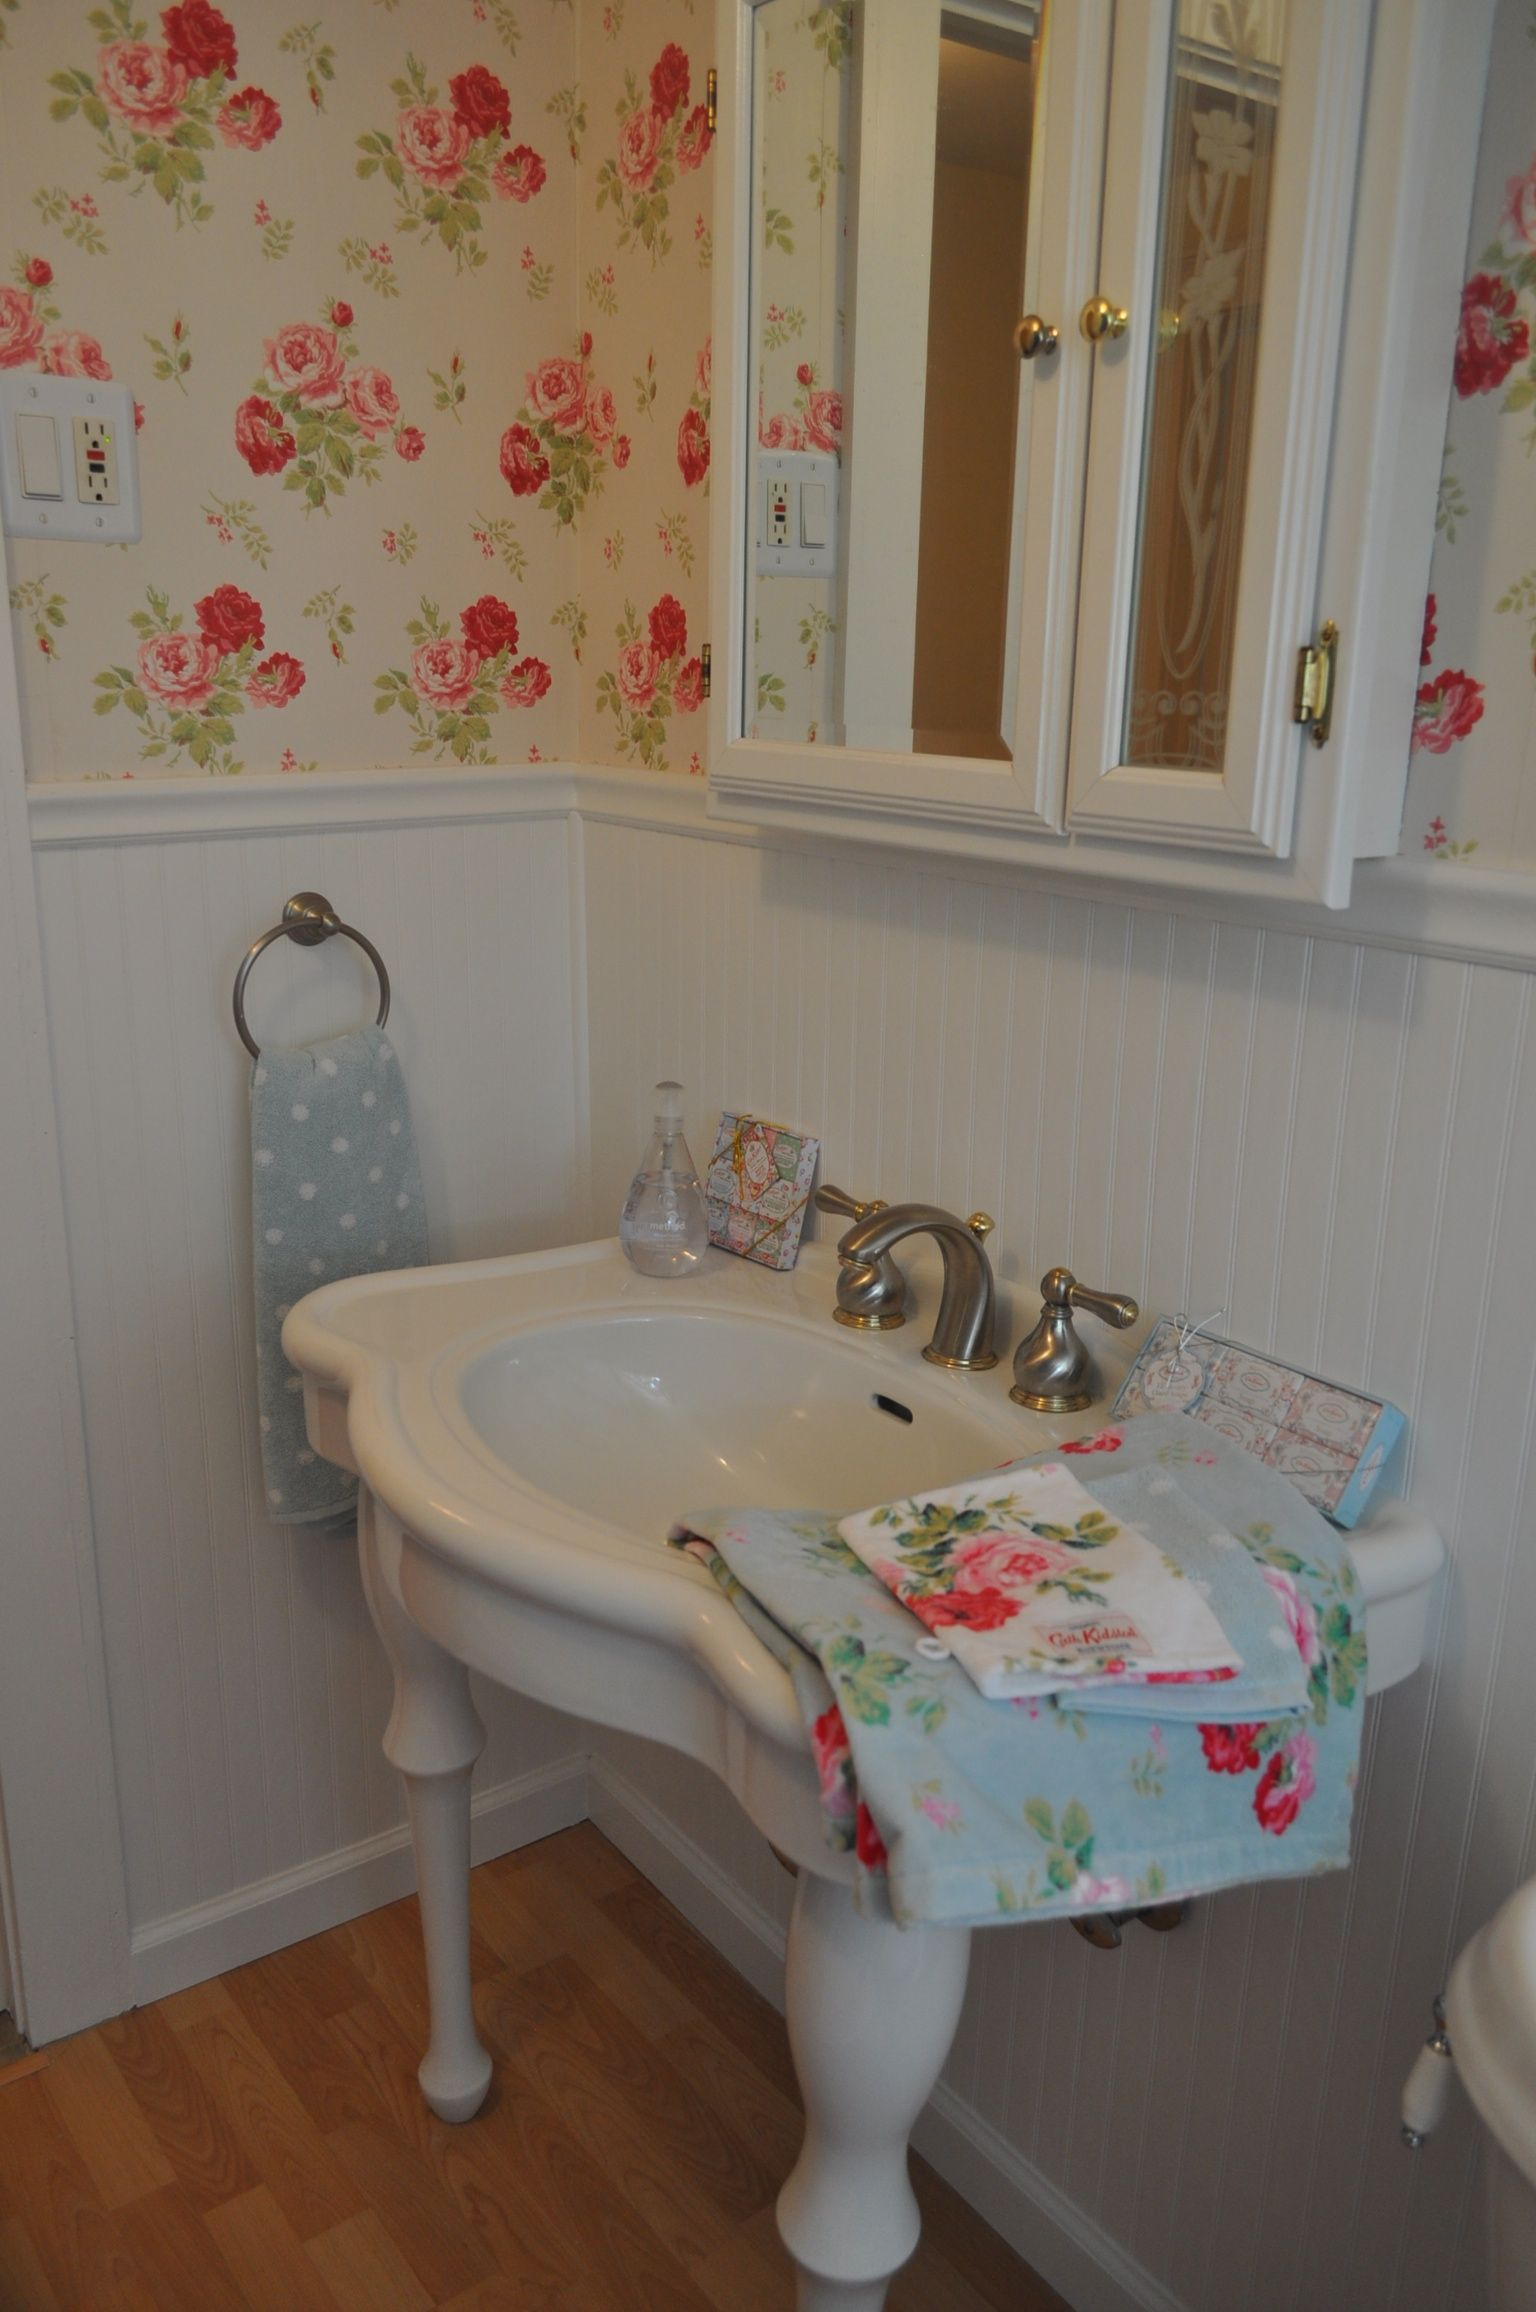 My Cath Kidstoned Up Guest Bathroom Had To Make Old Retro Blue Bath Tiles Work Somehow And This Seemed Like The Only Solution